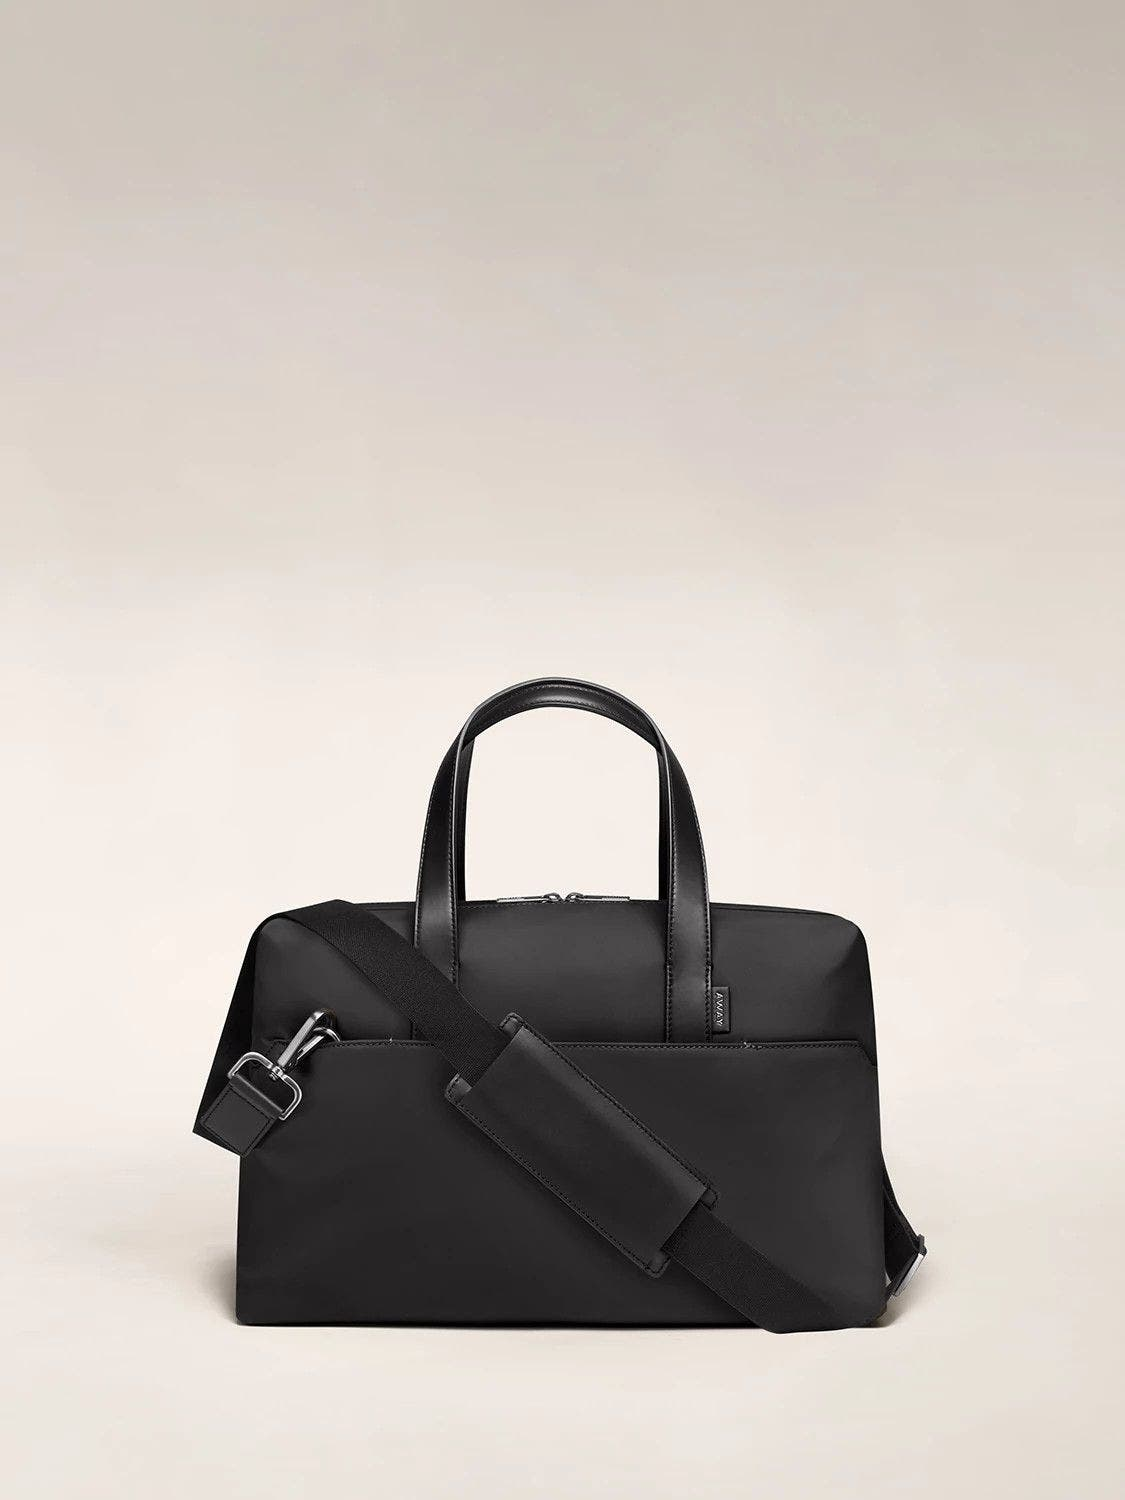 Black duffle with back zip pocket, and shoulder strap across the bag.